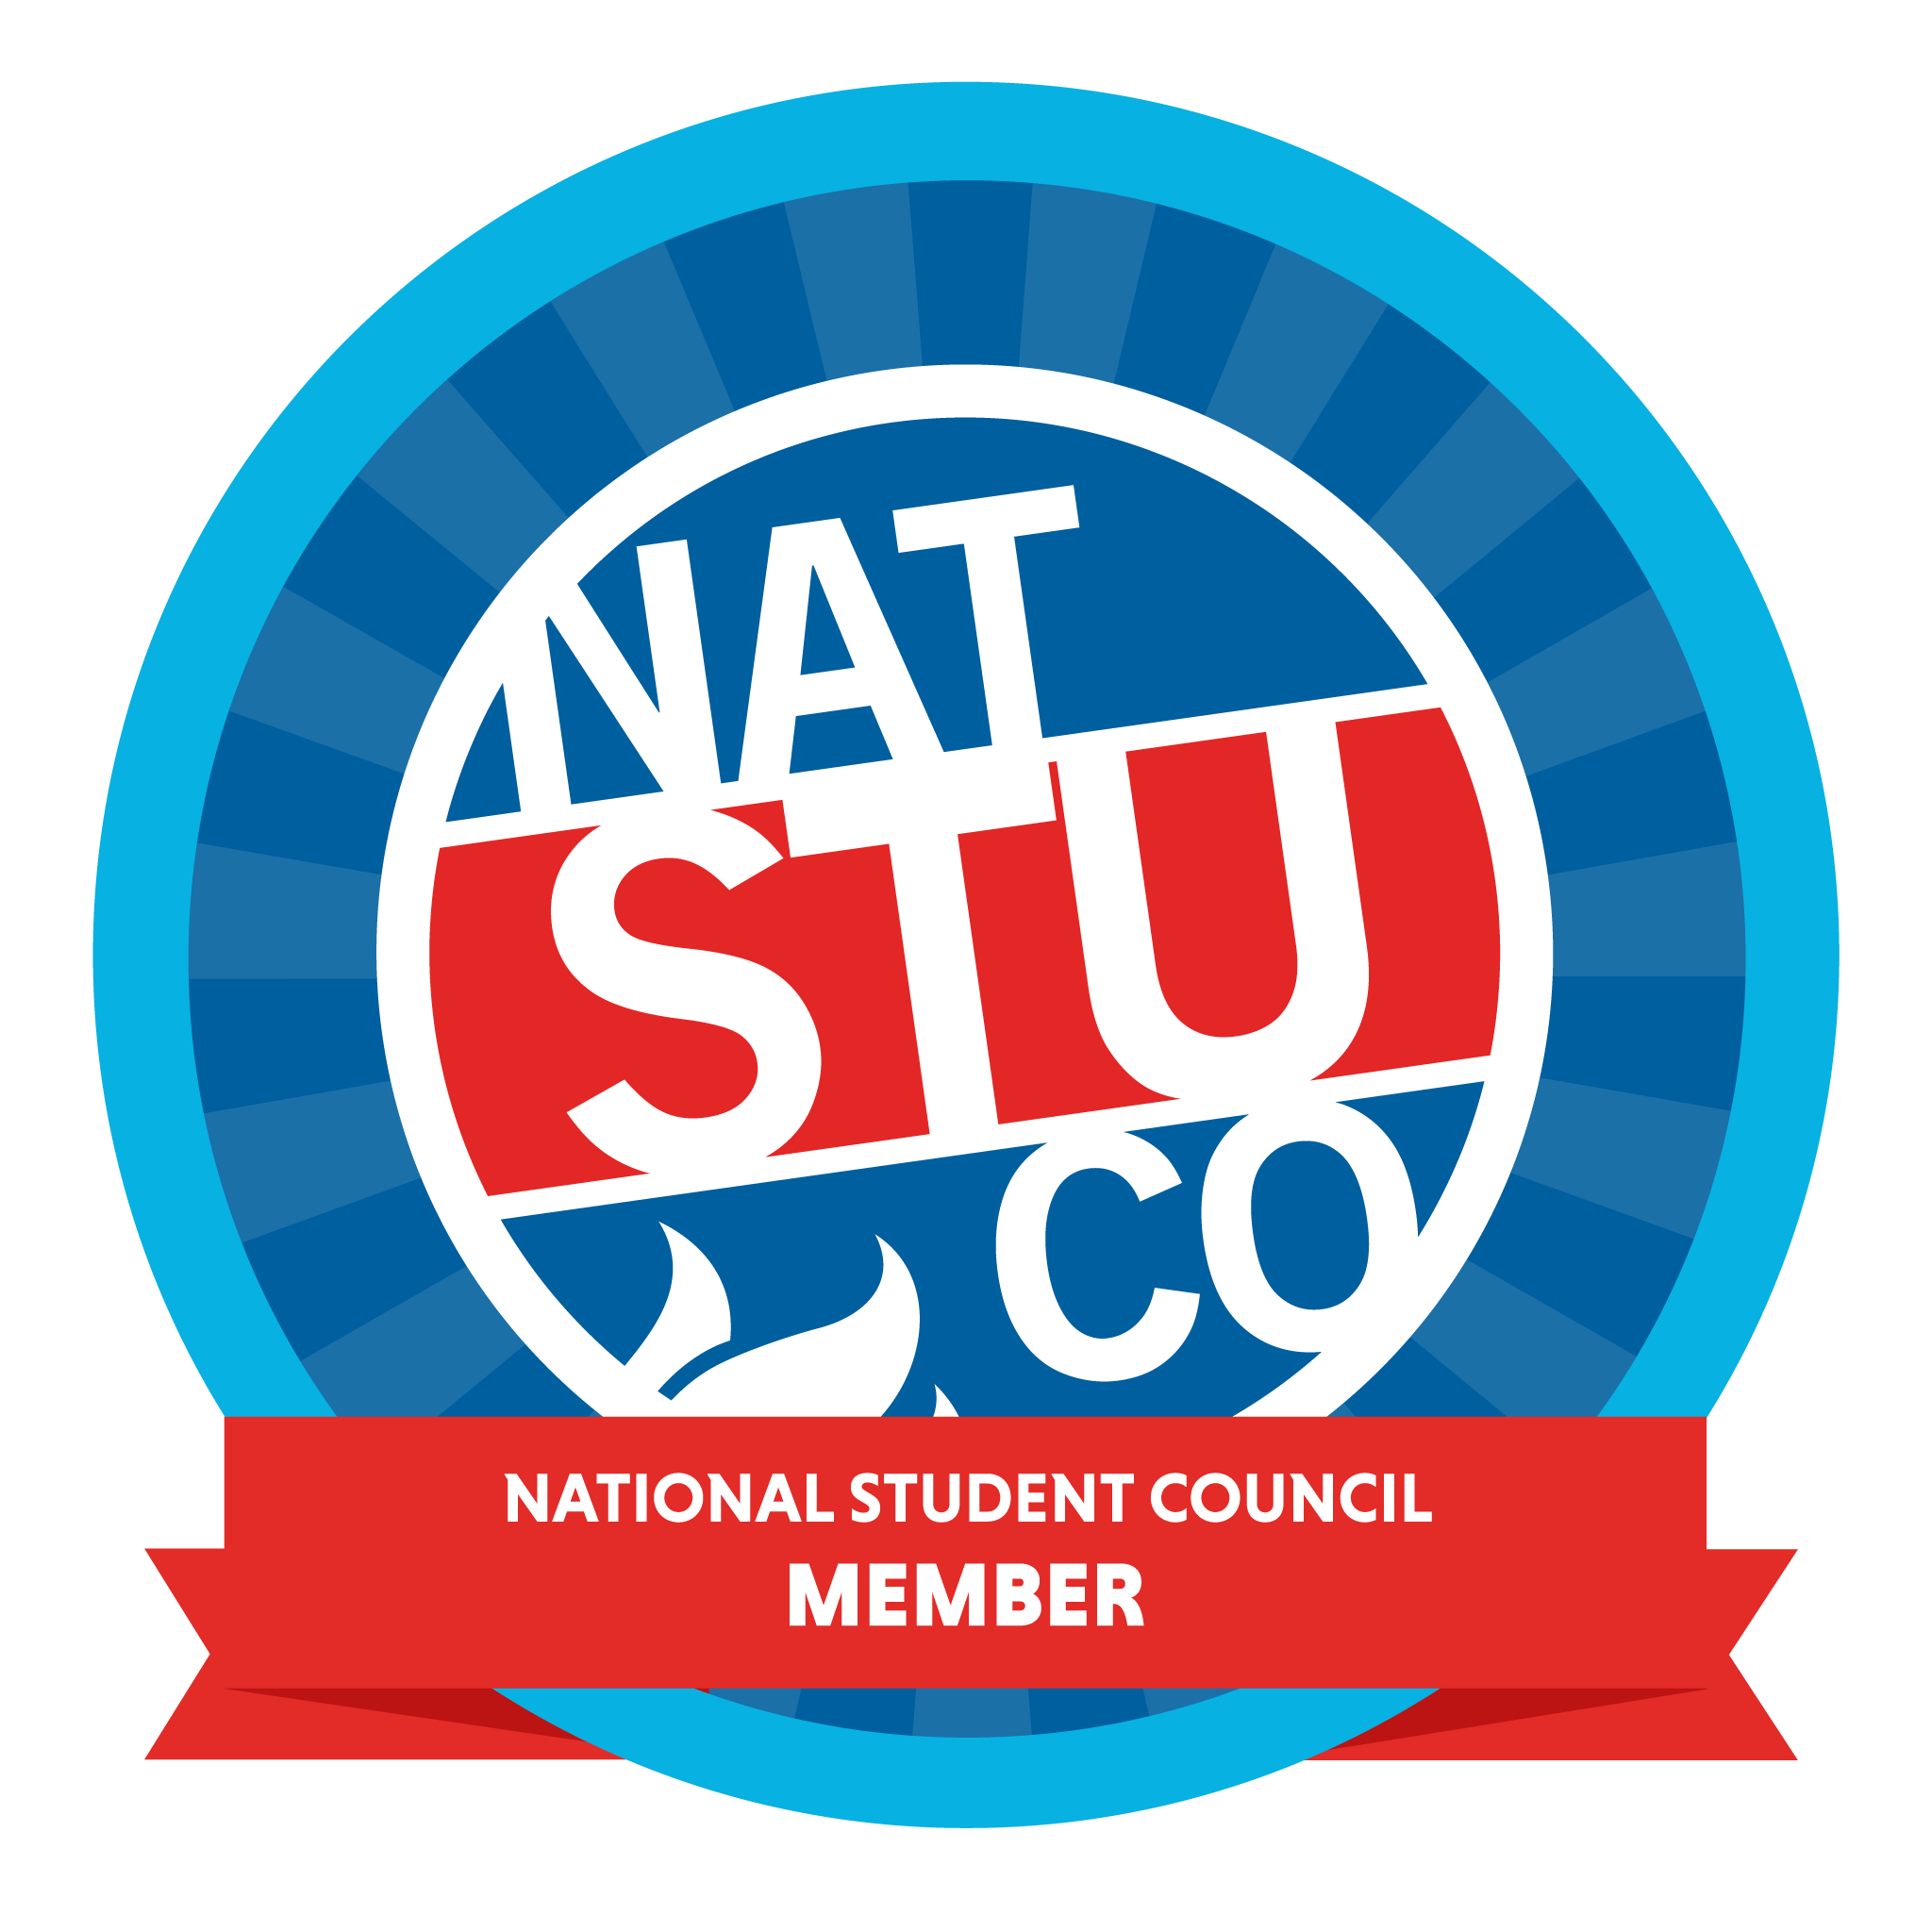 National Student Council Member